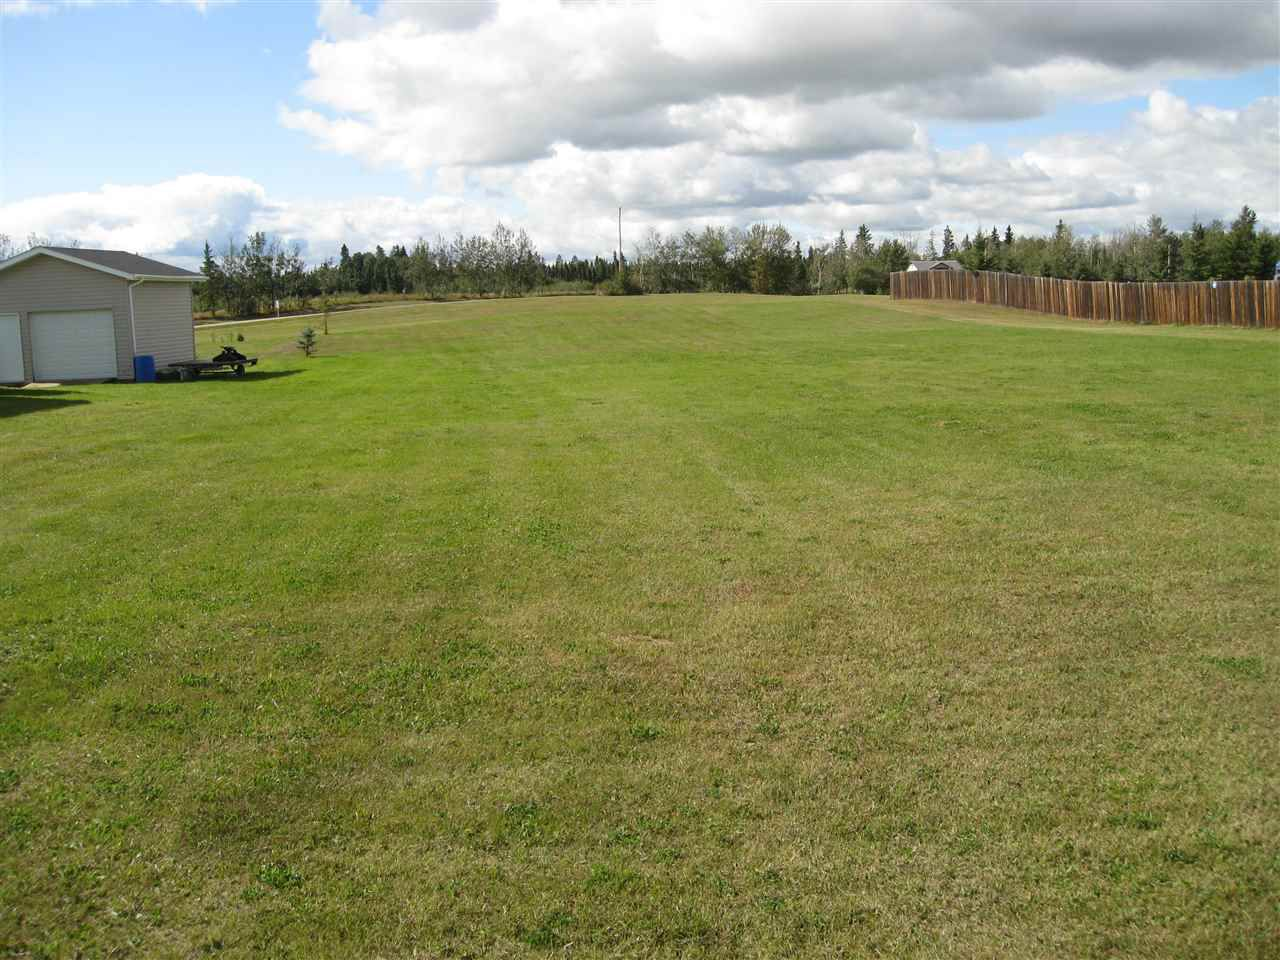 Main Photo: 6 5304 Everett  Rd: Rural Lac Ste. Anne County Rural Land/Vacant Lot for sale : MLS®# E4127747